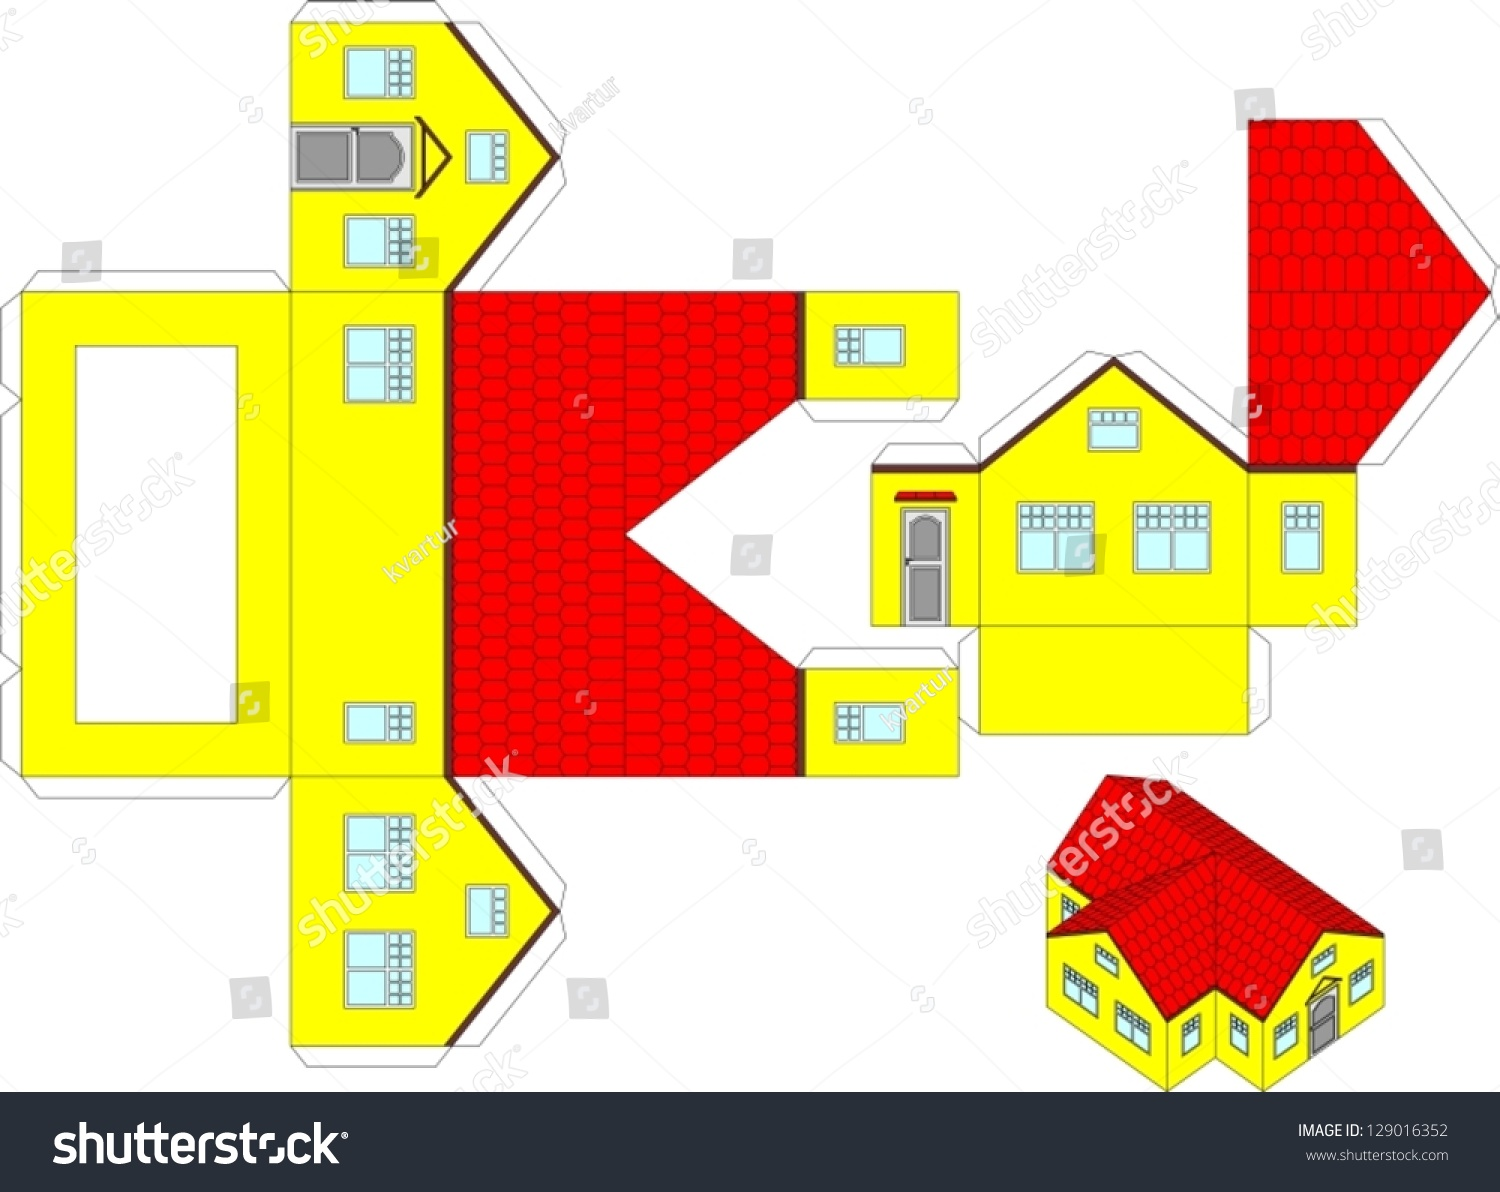 Printable 3d Paper Craft House Stock Vector 129016352 - Shutterstock